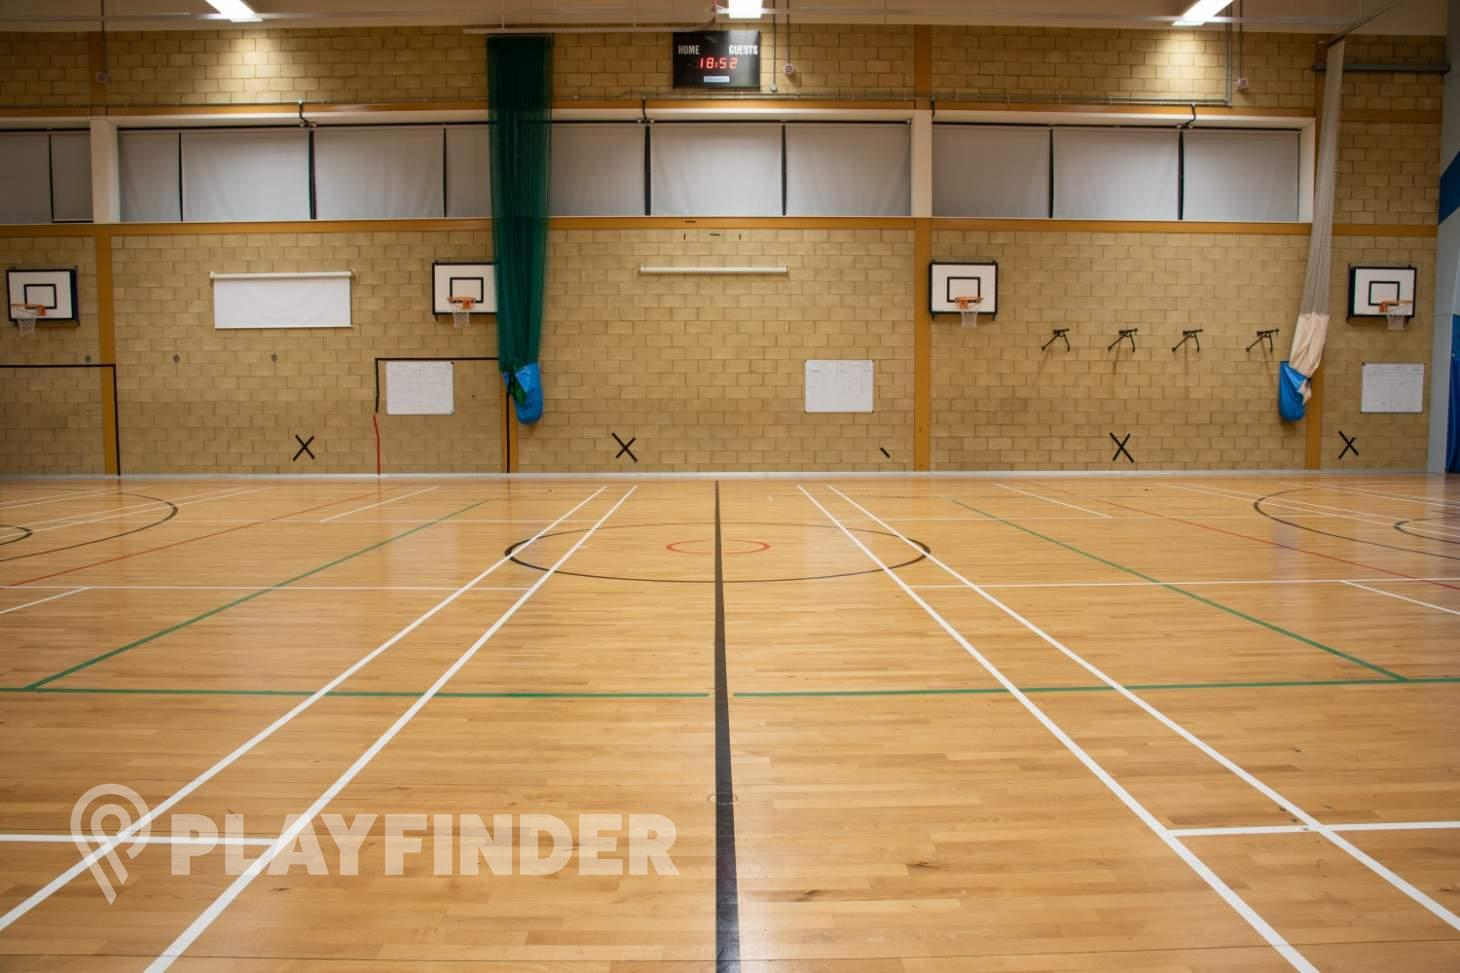 The Petchey Academy Sports Club Indoor basketball court